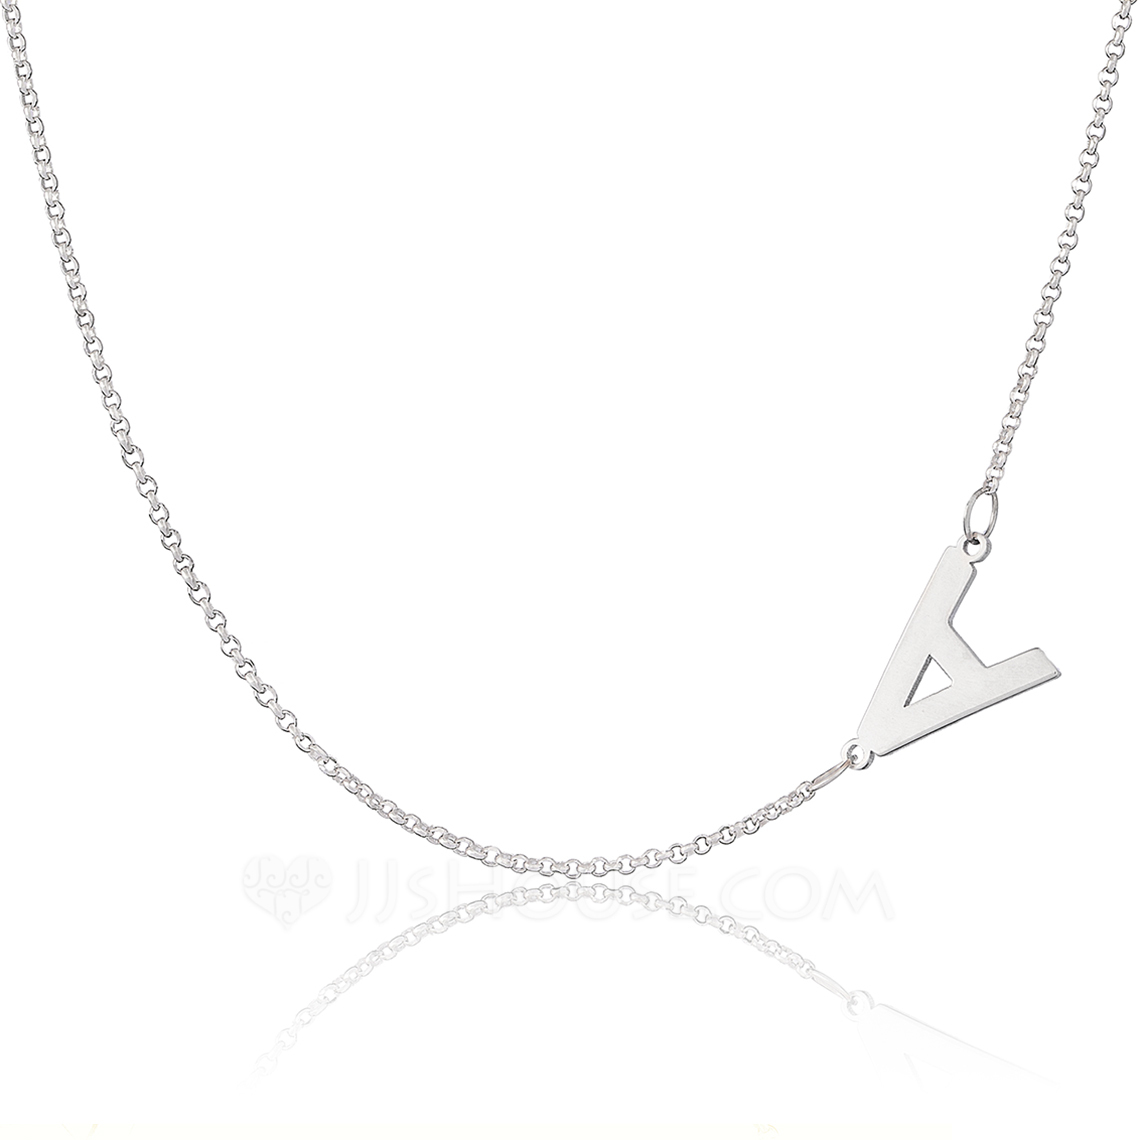 Bridesmaid Gifts - Personalized Fascinating Sterling Silver Name Necklace